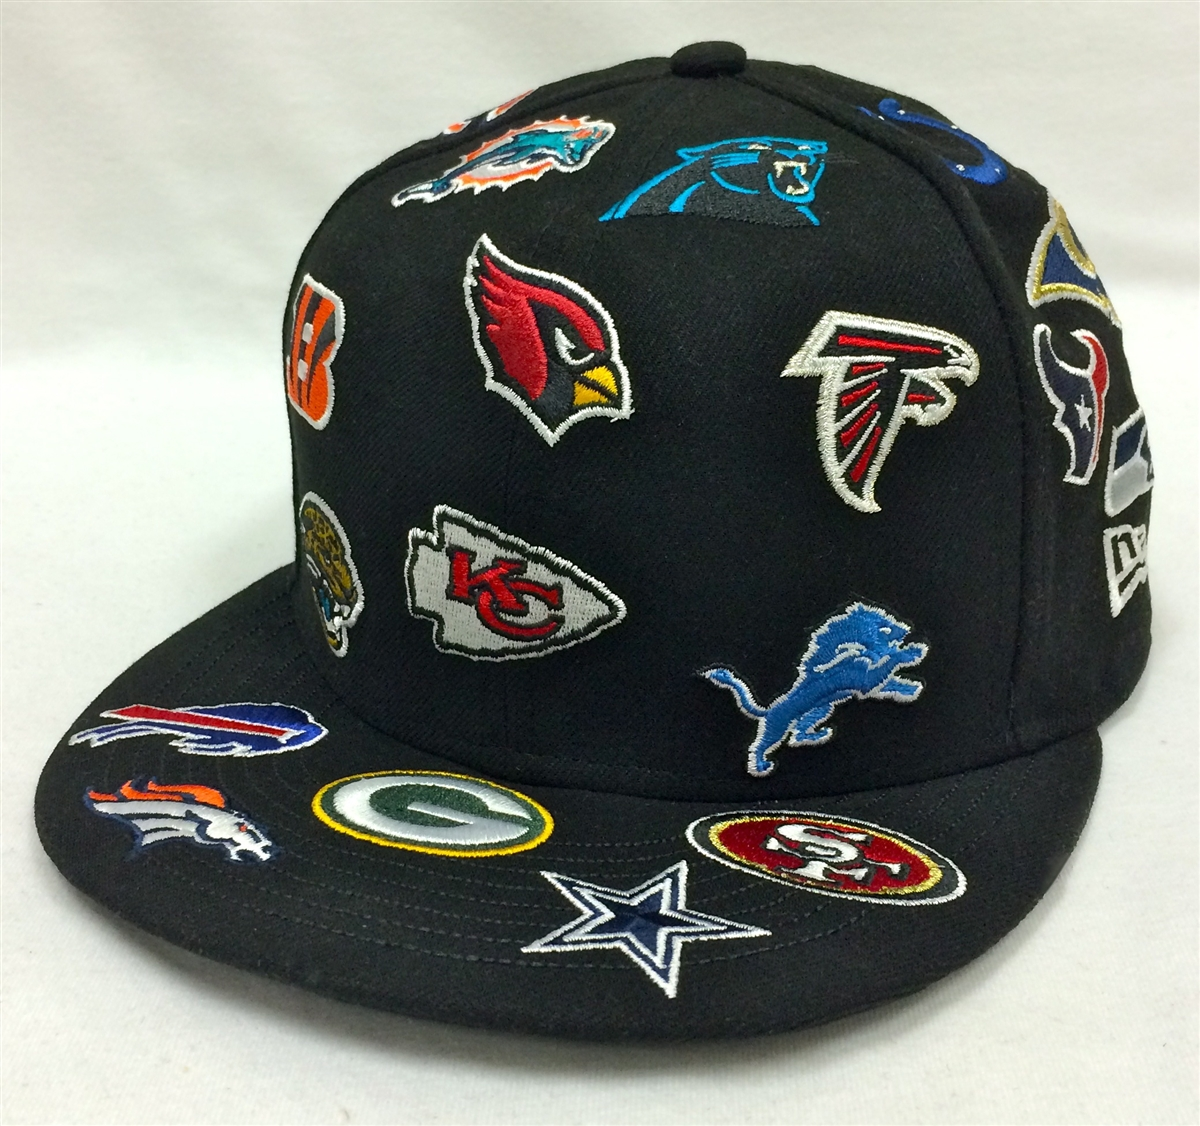 ... top quality new era 59fifty all over nfl black fitted cap 40a74 2a890 8461f94fbf7